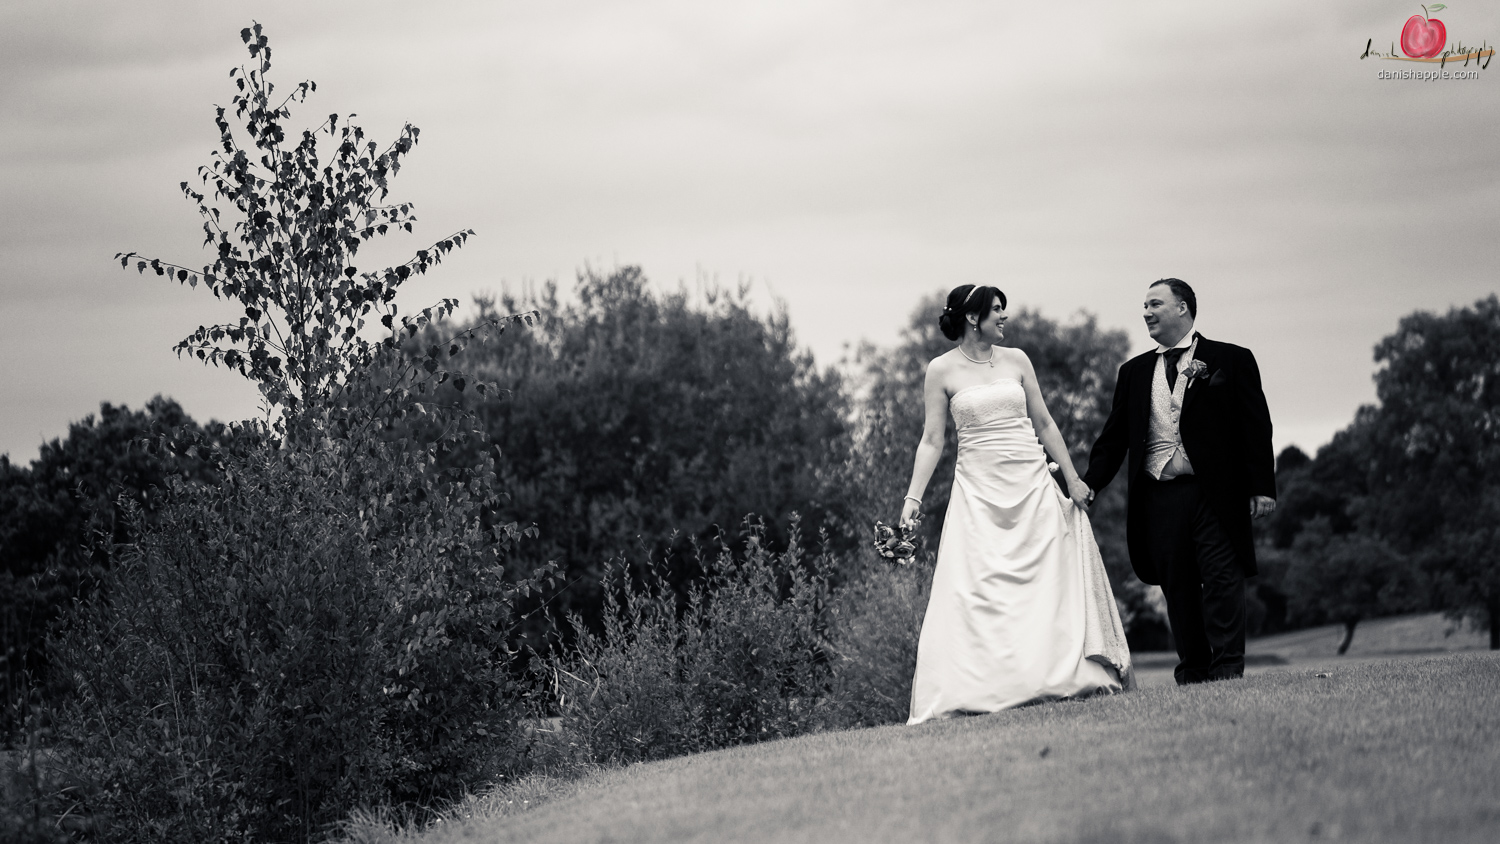 Bride and groom wedding walk shot with Nikon D810